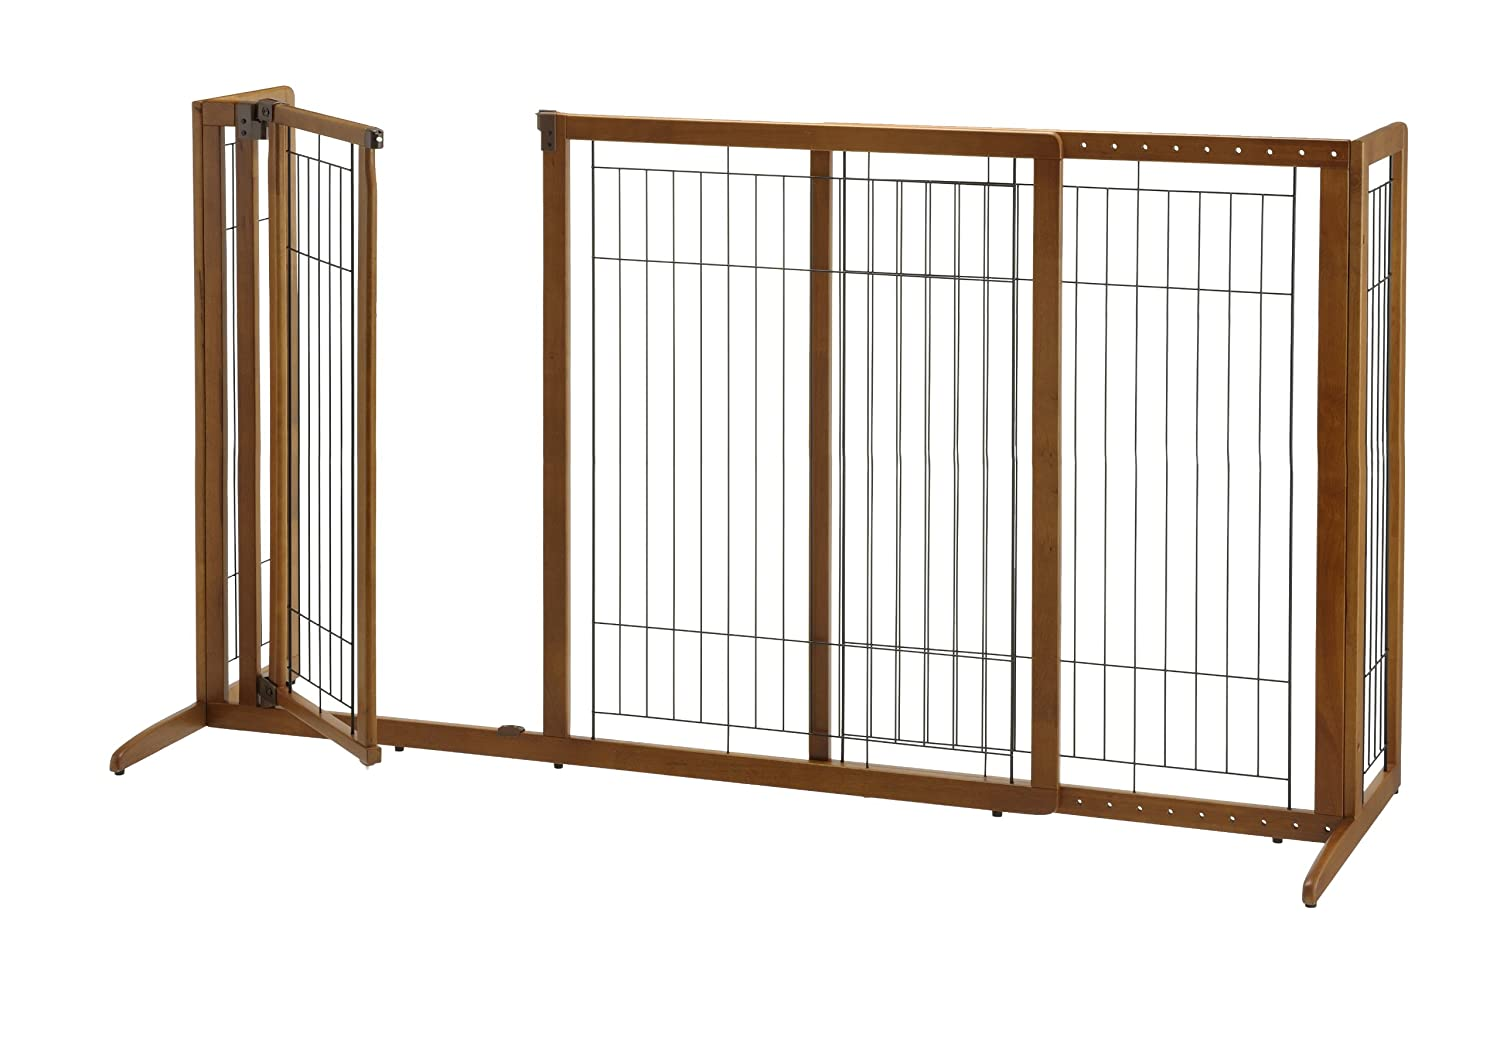 Charmant Amazon.com : Richell Deluxe Freestanding Pet Gate With Door, Large : Pet  Kennels : Pet Supplies